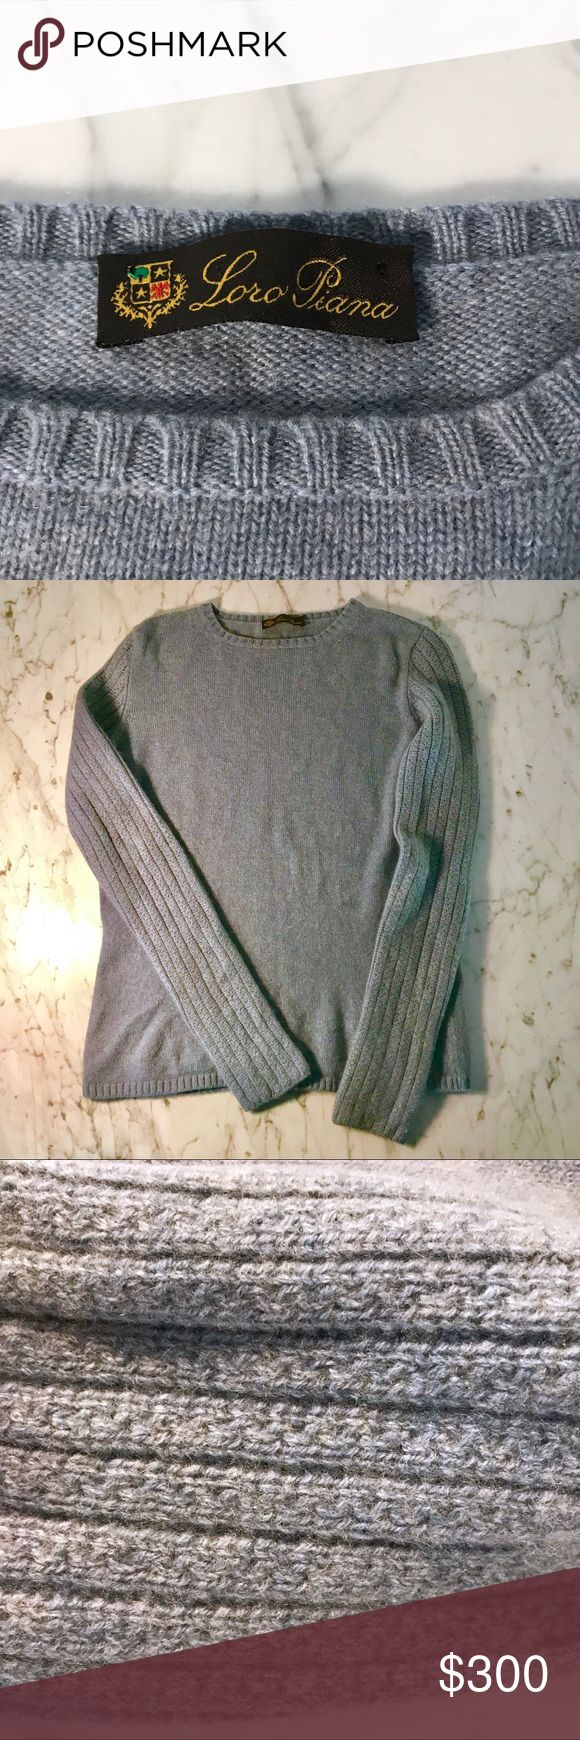 LORO PIANA luxury cashmere sweater, size S 💗💗💗 This is the softest thing I have ever held in my hands! The color is best represented by the close-up photos and is definitely blue with a hint of gray. The cable knit arms are gorgeous and the proportions are perfect. These retail for between $1500 and $2200. There is a hole (snag not moth) on the right sleeve which I'm having professionally repaired. I'll post a photo ASAP when it's done. The price reflects its one imperfection. Loro Piana…